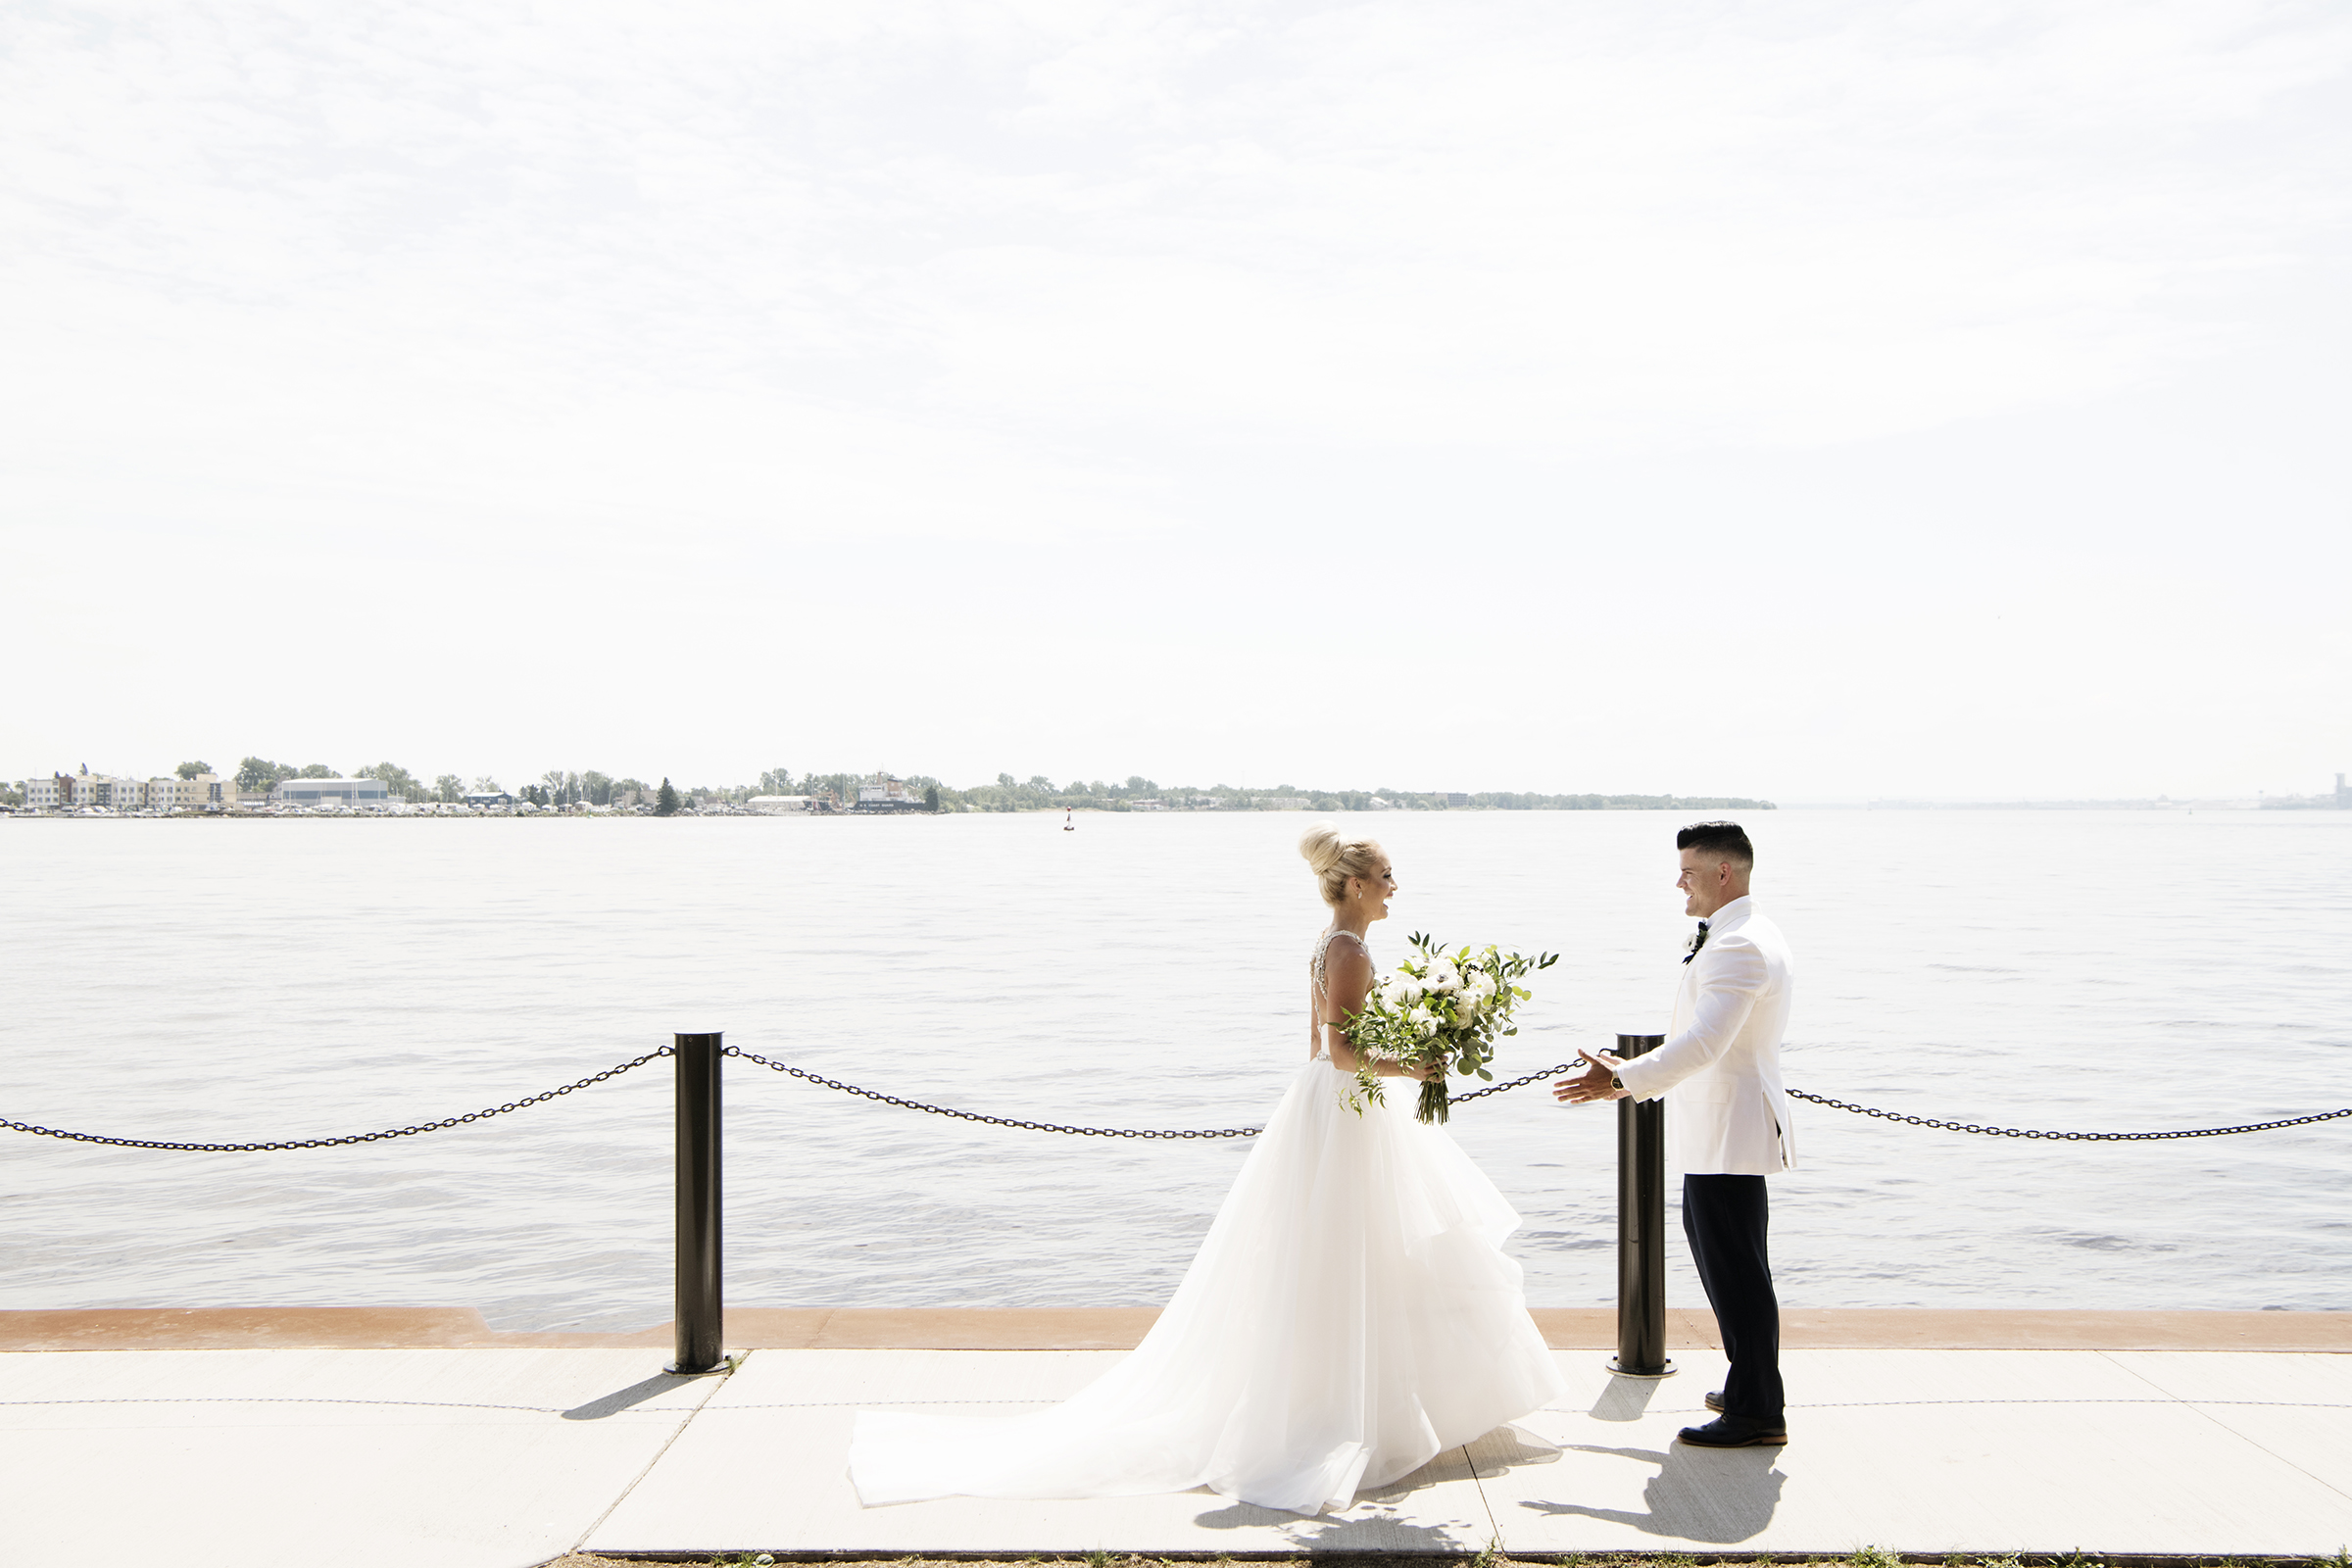 Duluth, Minnesota Wedding Photos | Photography by Photogen Inc. | Eliesa Johnson | Luxury Wedding Photography Based in Minneapolis, Minnesota